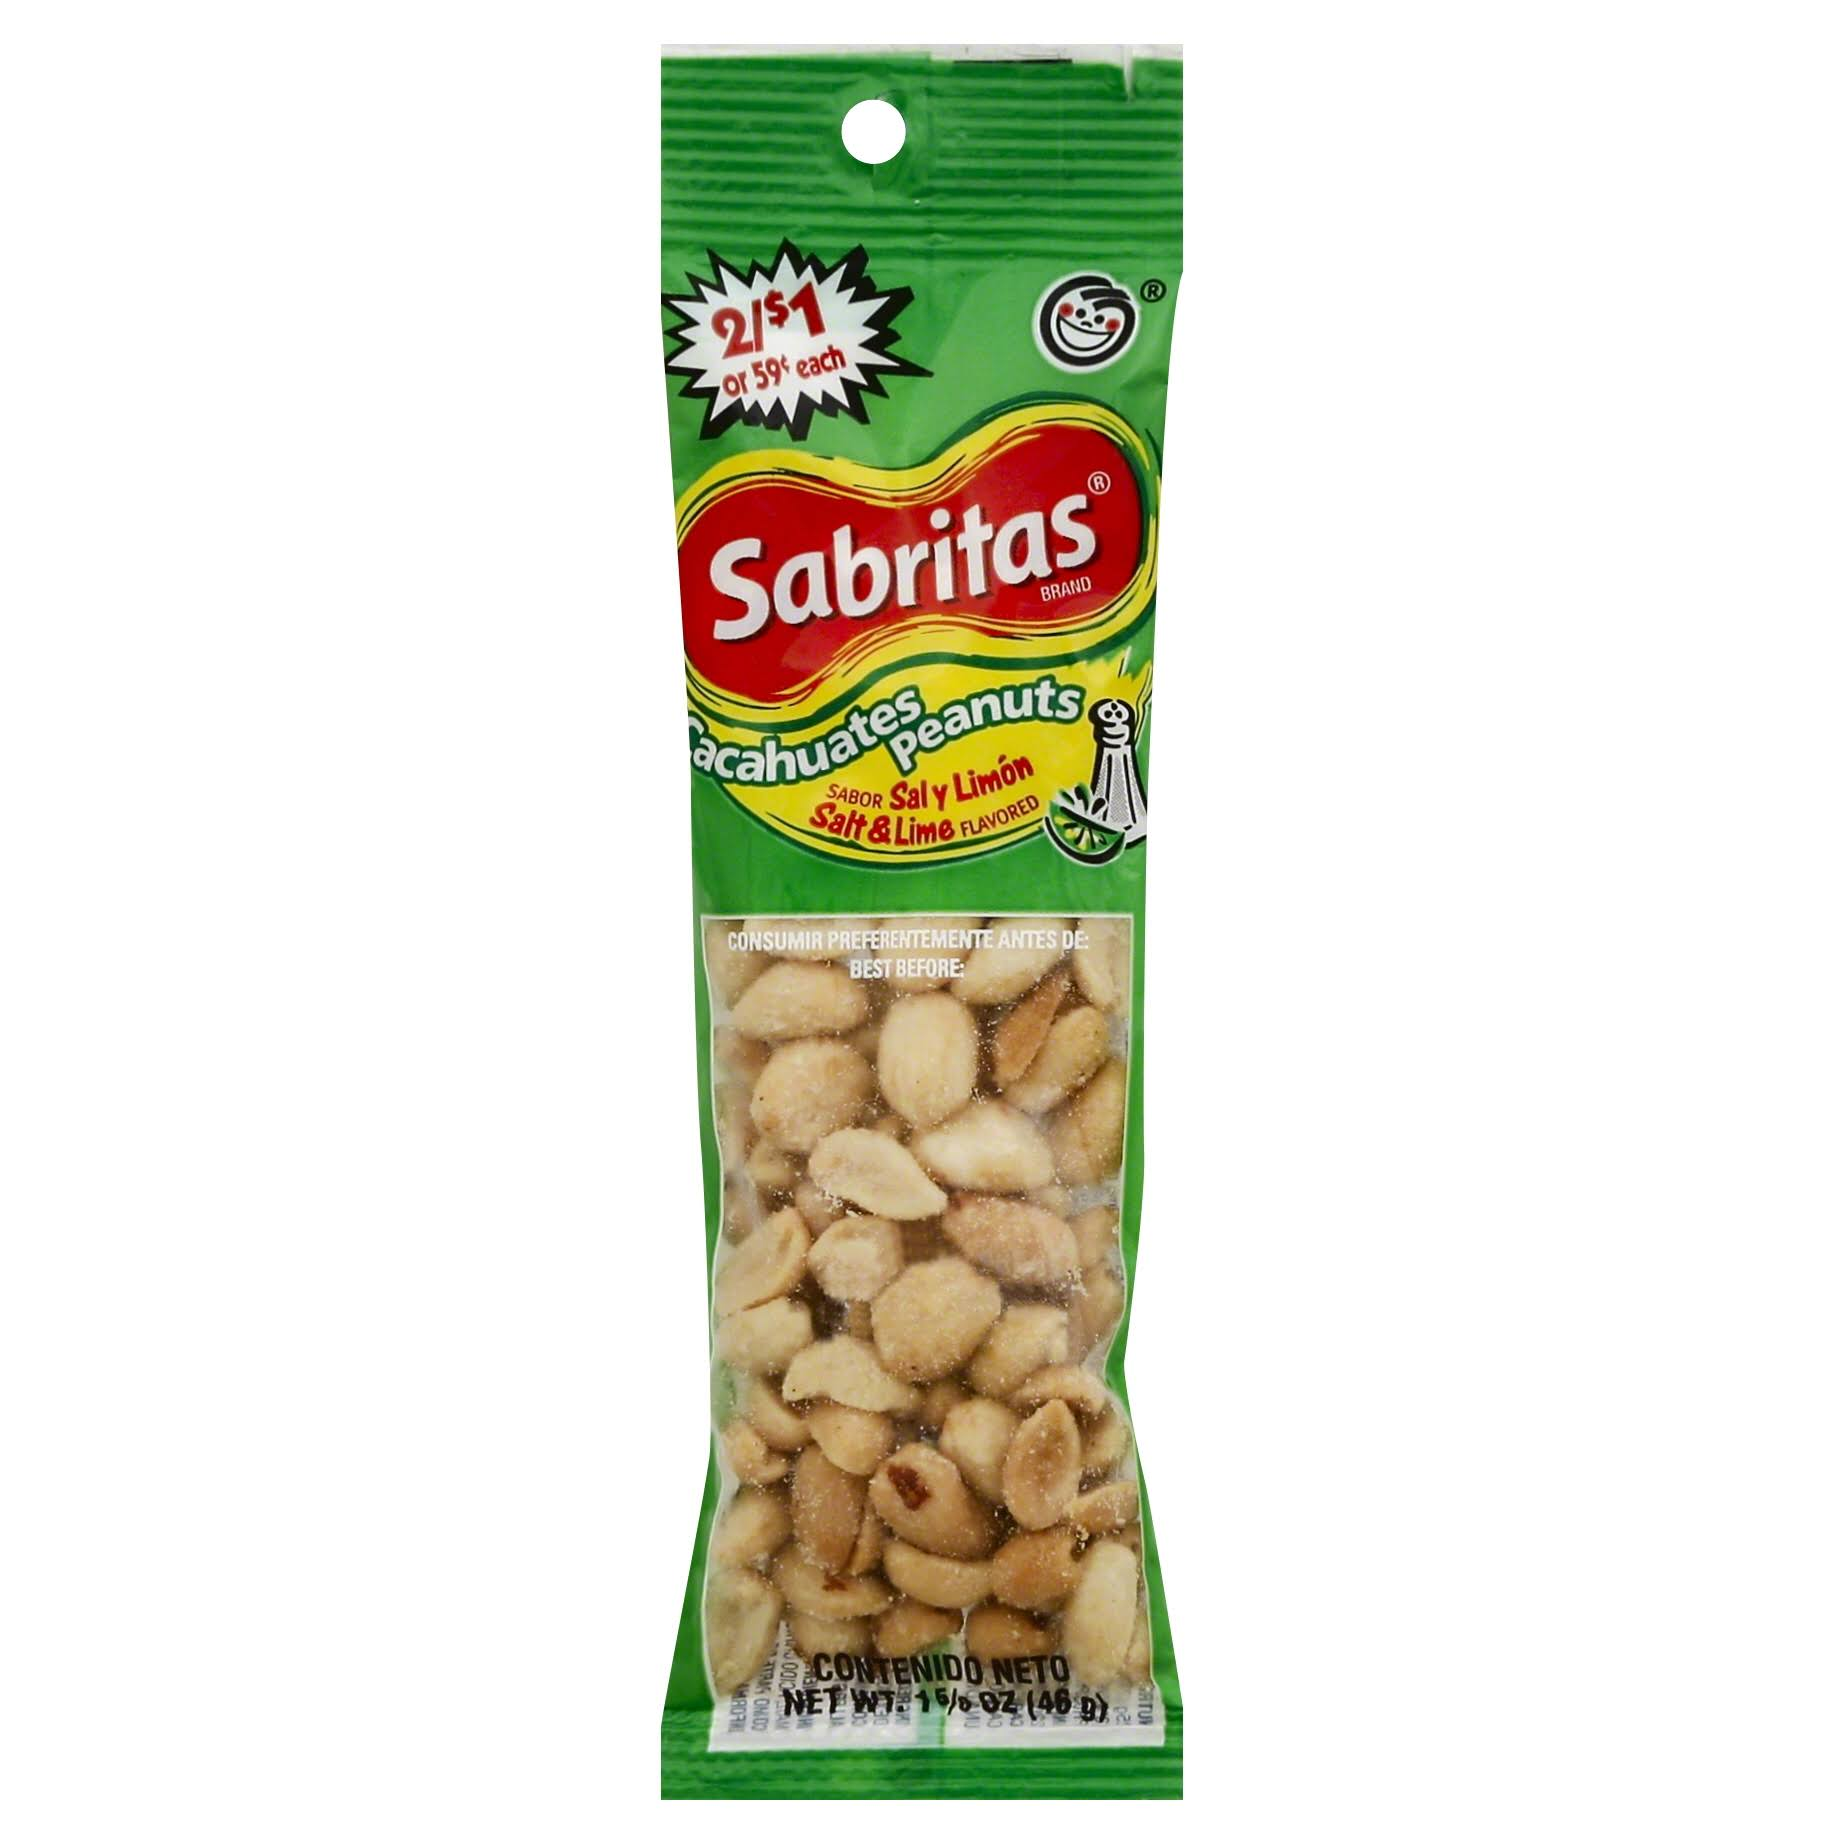 Frito Lay Sabritas Peanuts - Salt Lime, 1.625oz